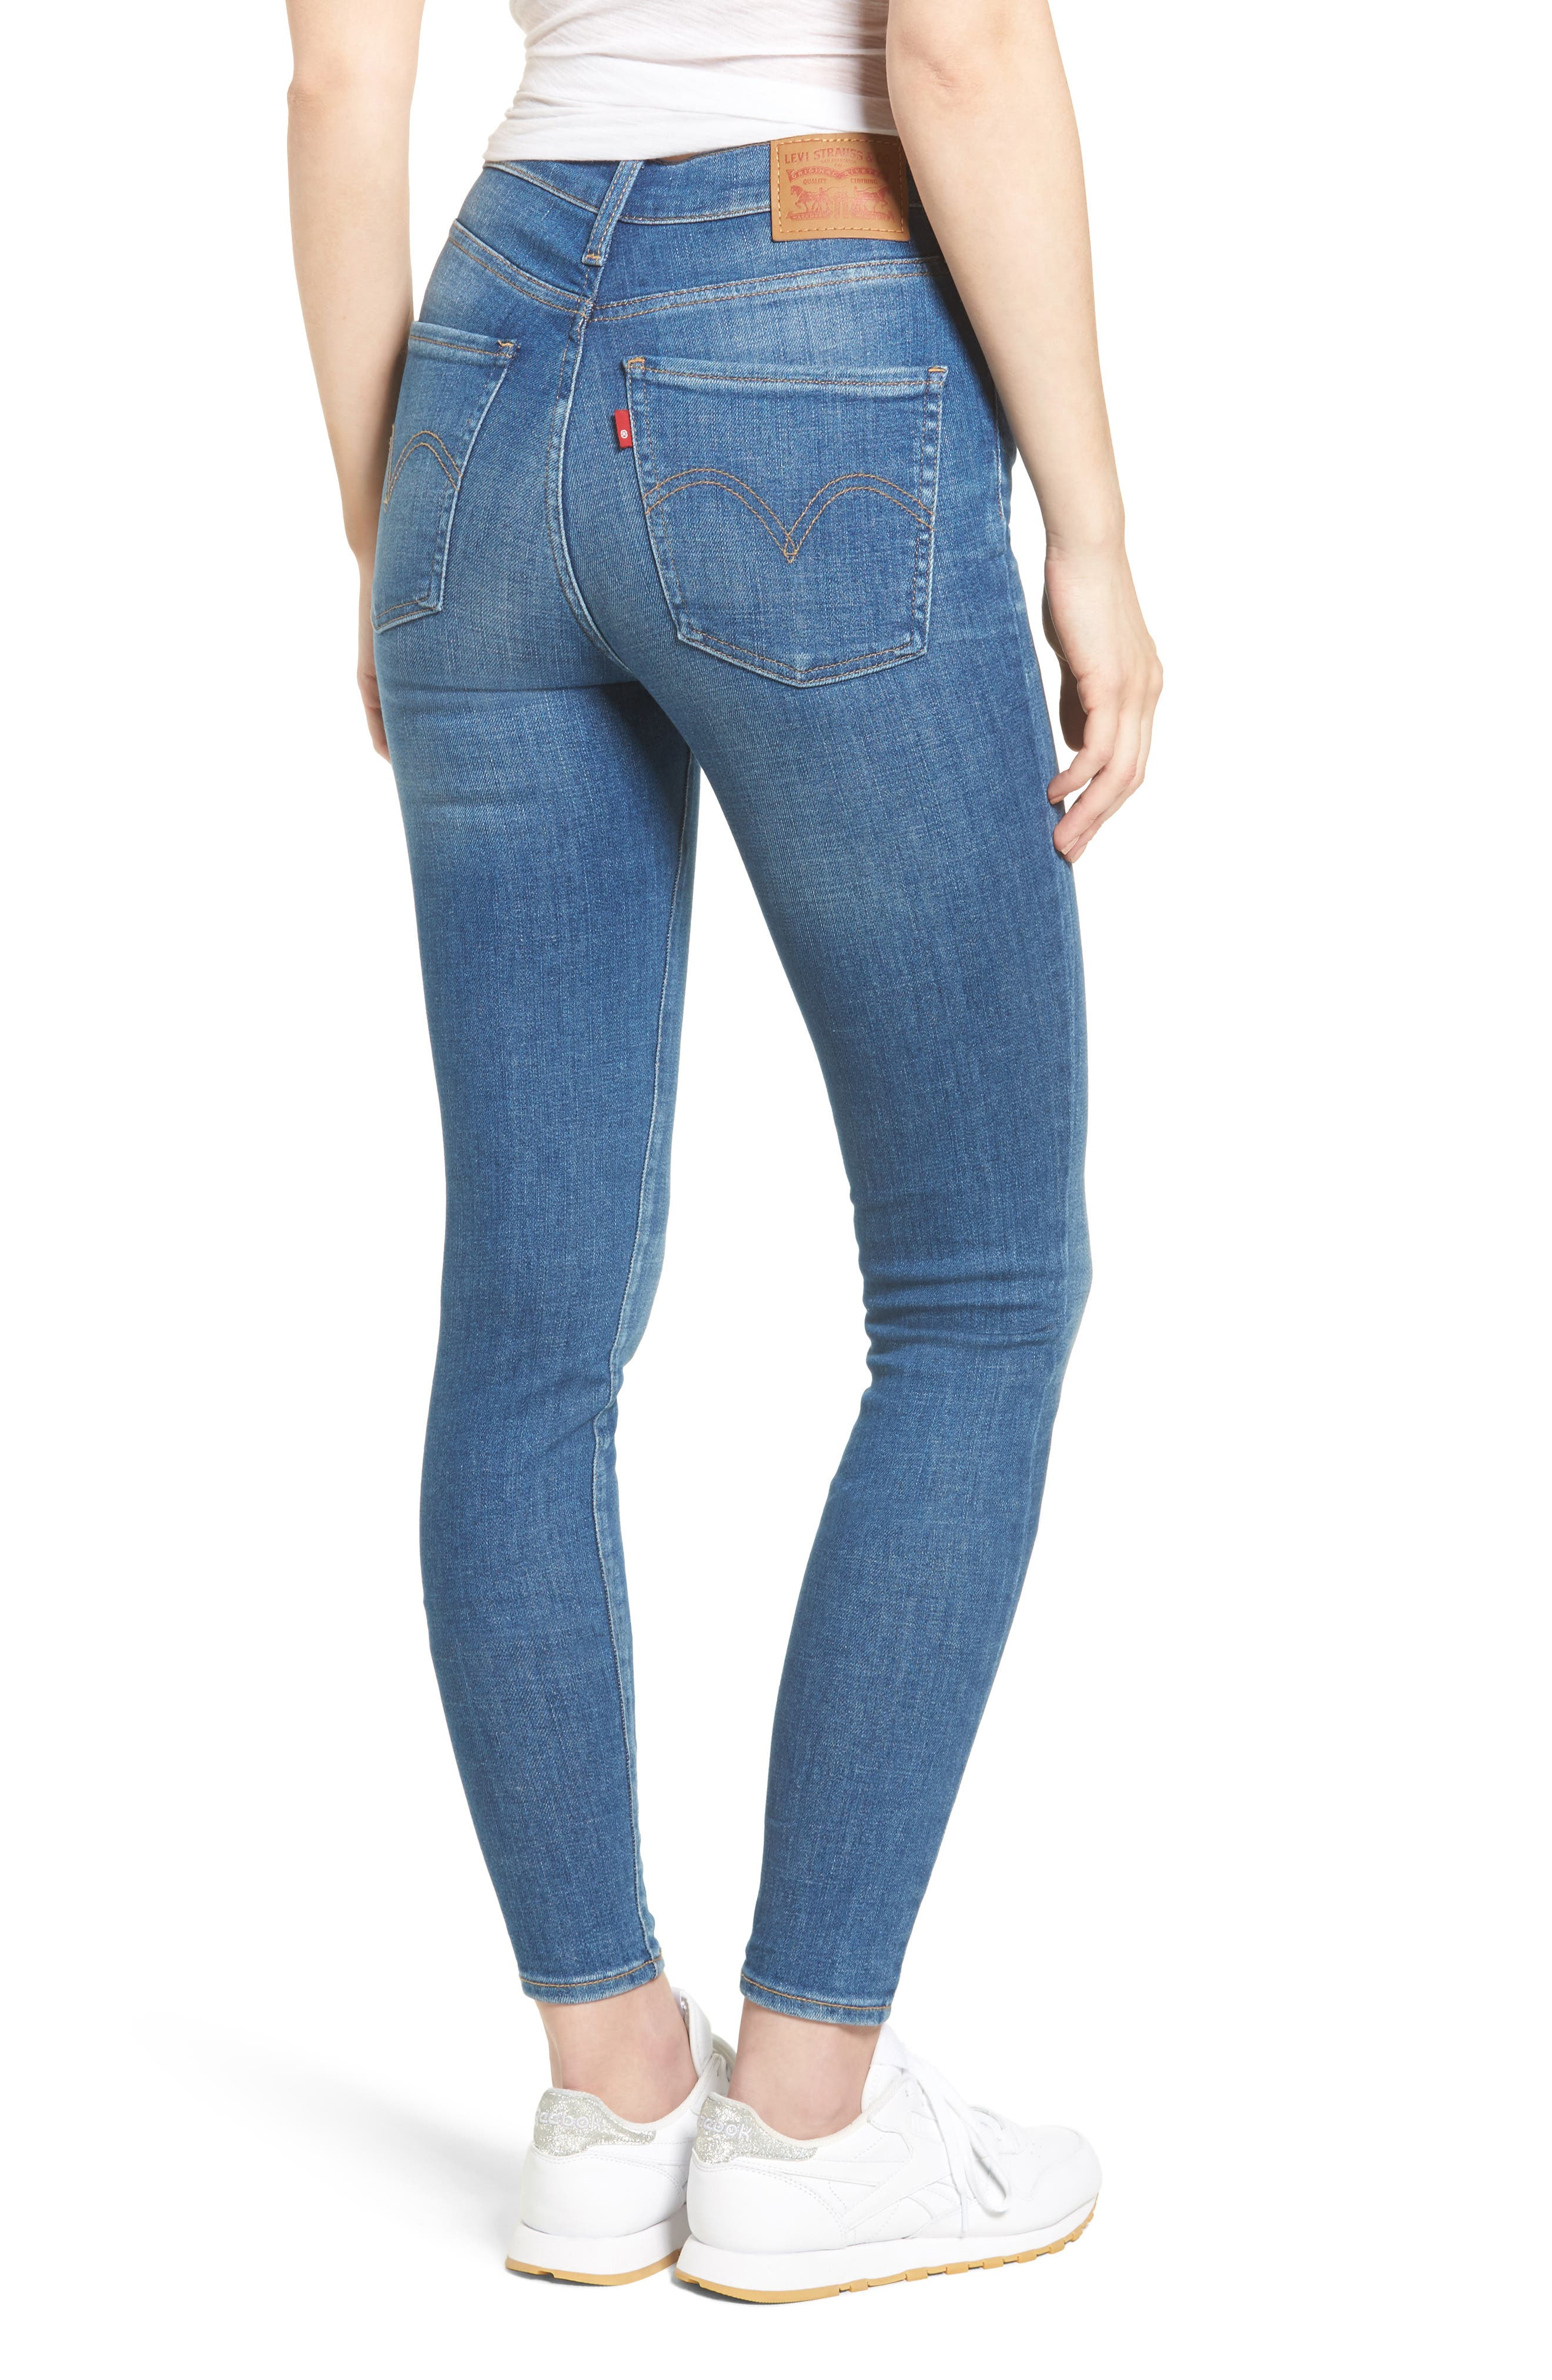 Mile High Skinny Jeans,                             Alternate thumbnail 2, color,